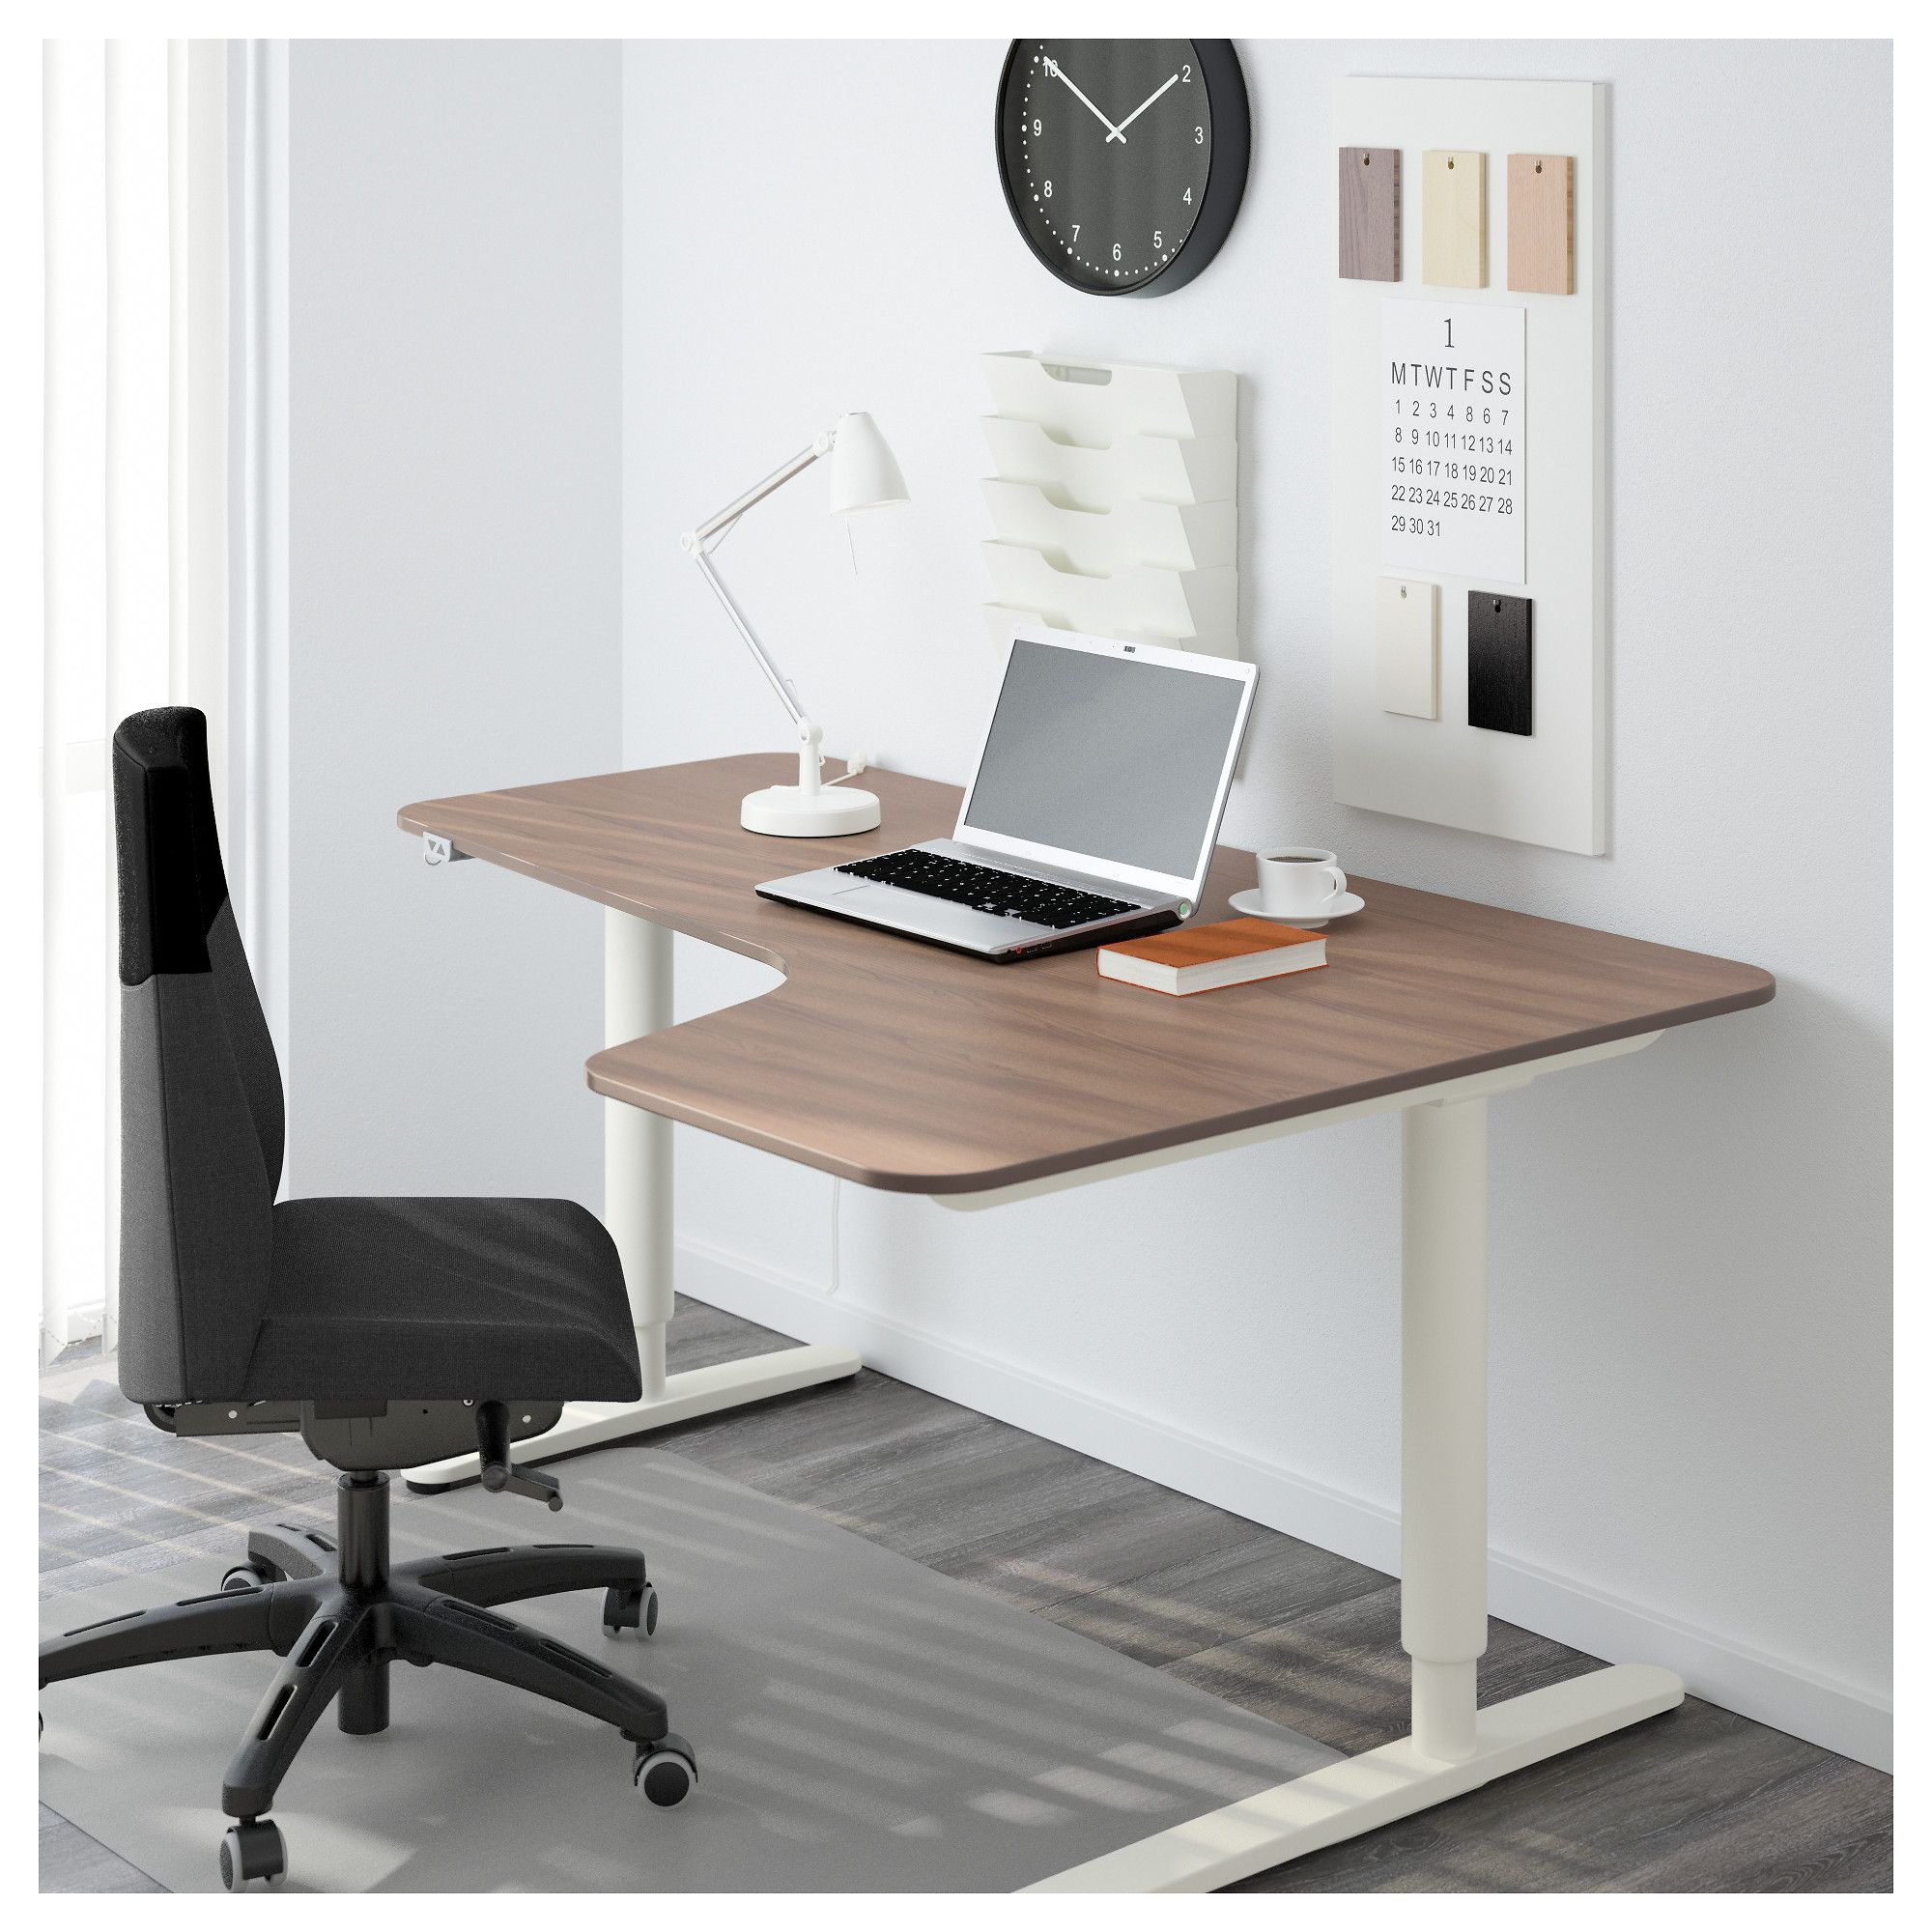 IKEA - BEKANT Corner desk right sit/stand gray, white | pro lady ...